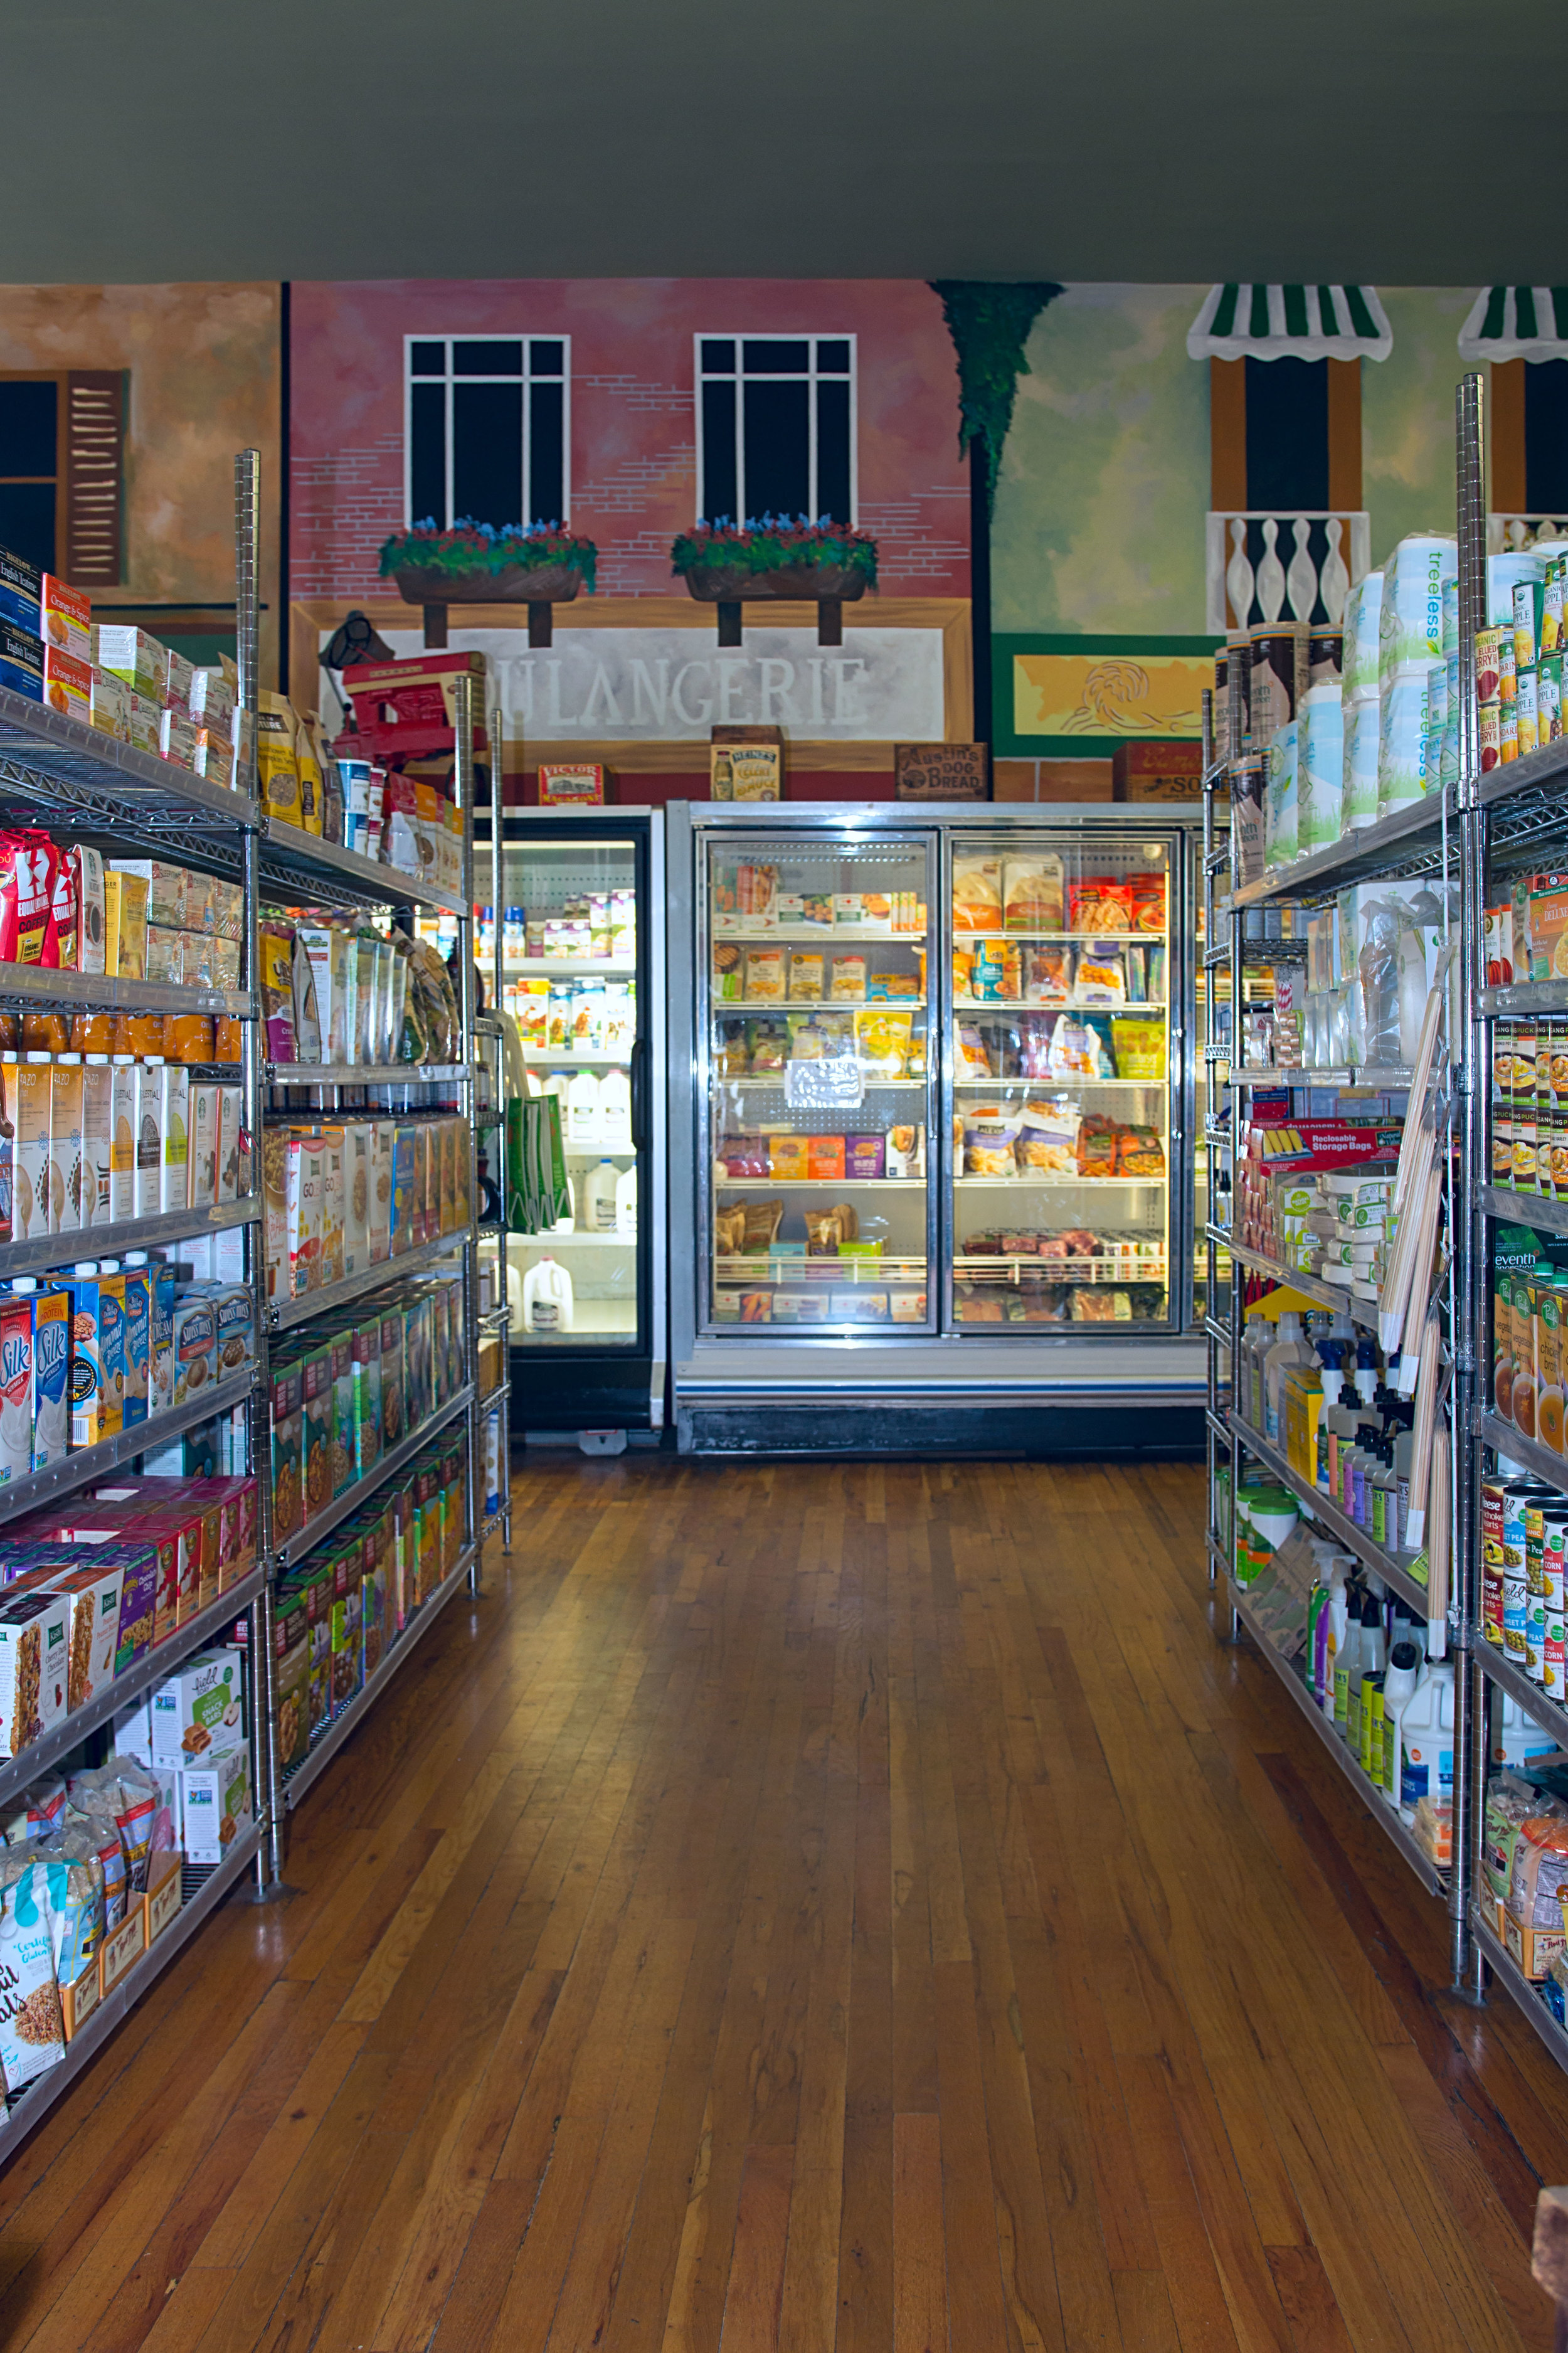 Groceries and sundries